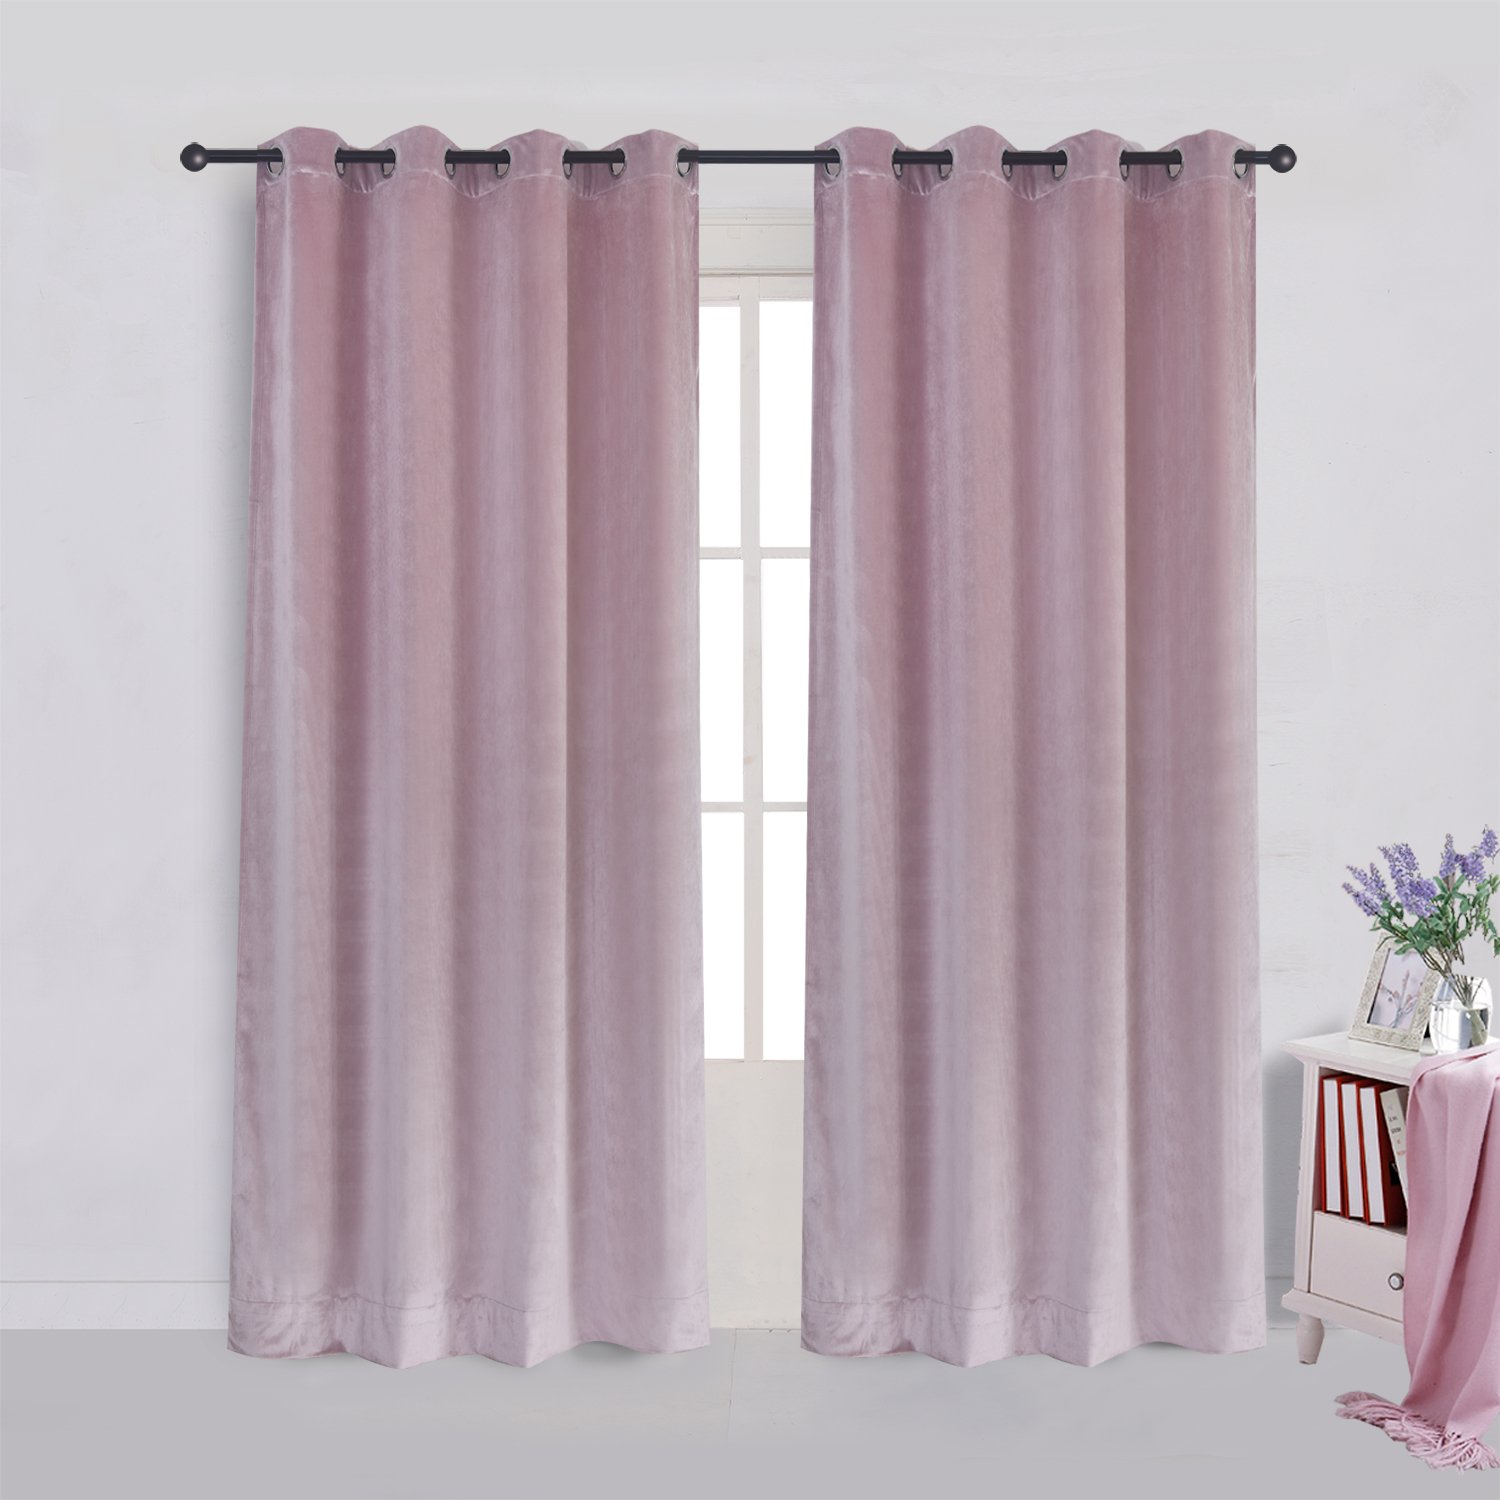 Super Soft Luxury Velvet Curtains Set of 2 Pink Flannel Blackout Drapes Grommet Draperies Eyelet 52Wx120L inch (2 panels) with Tiebacks